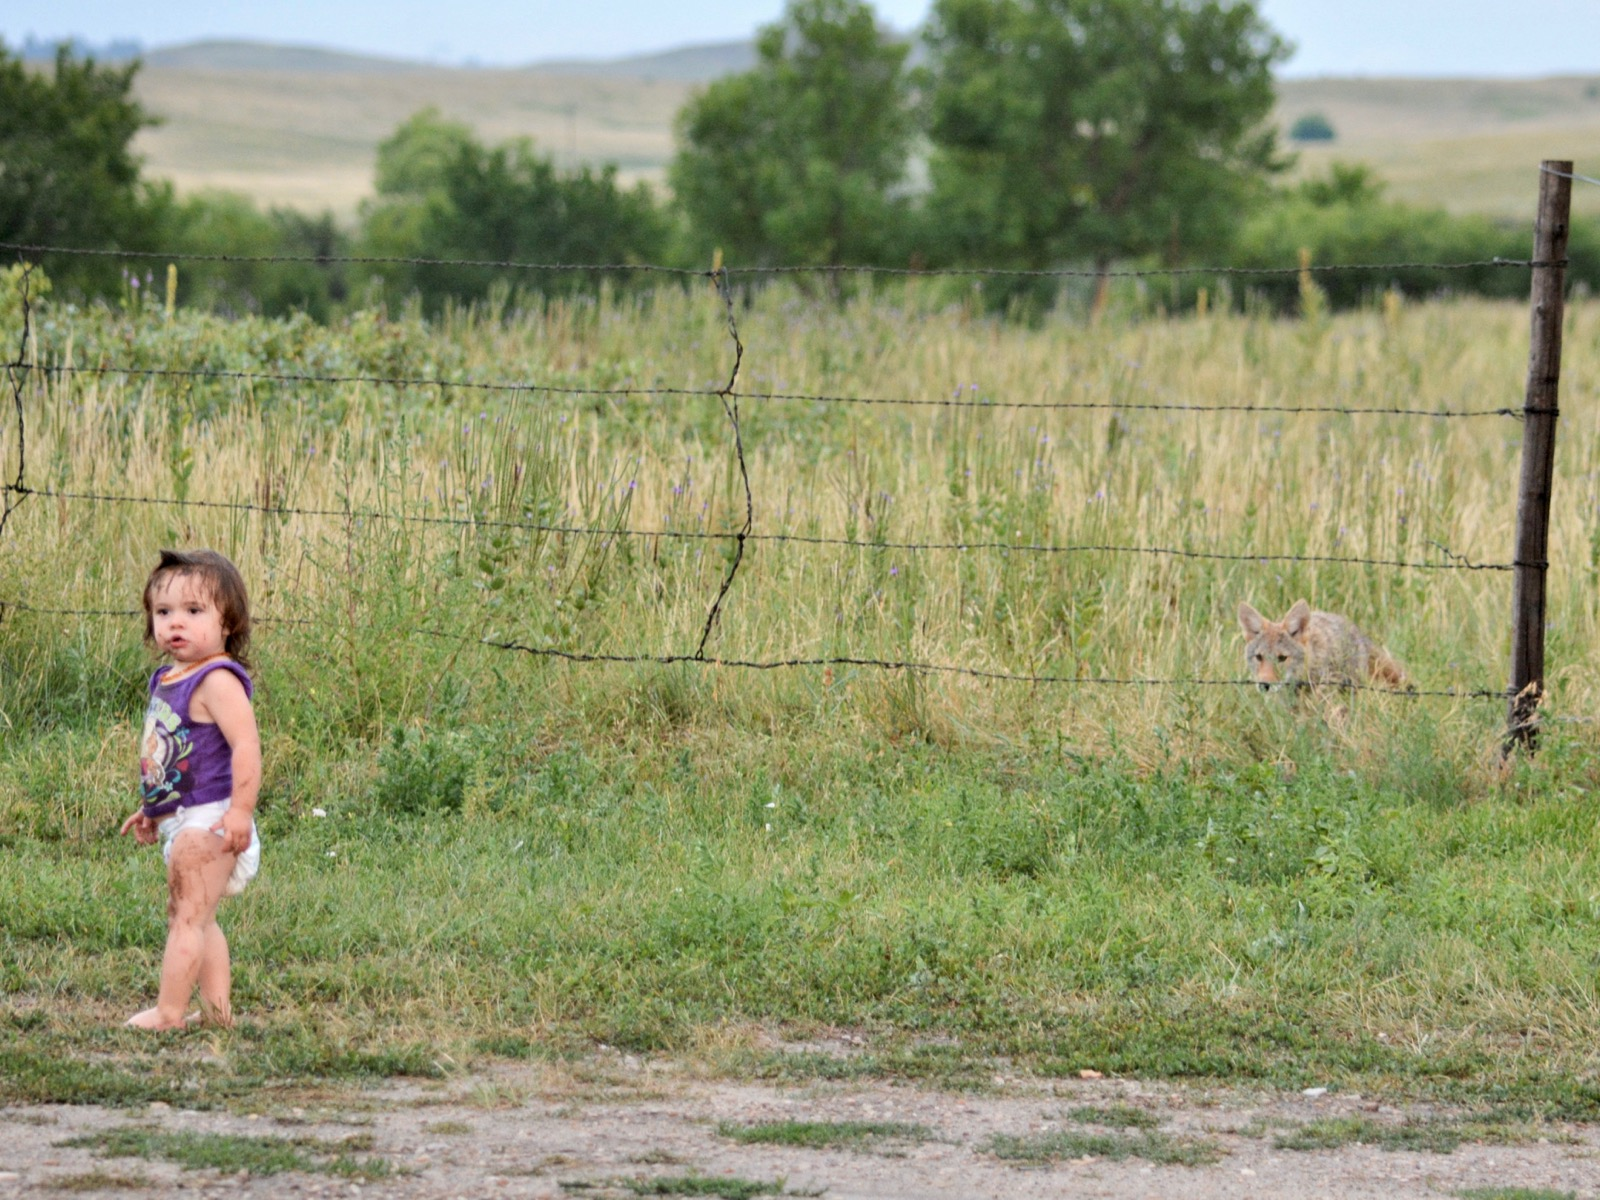 'He's protecting us': Pine Ridge family adopts coyote